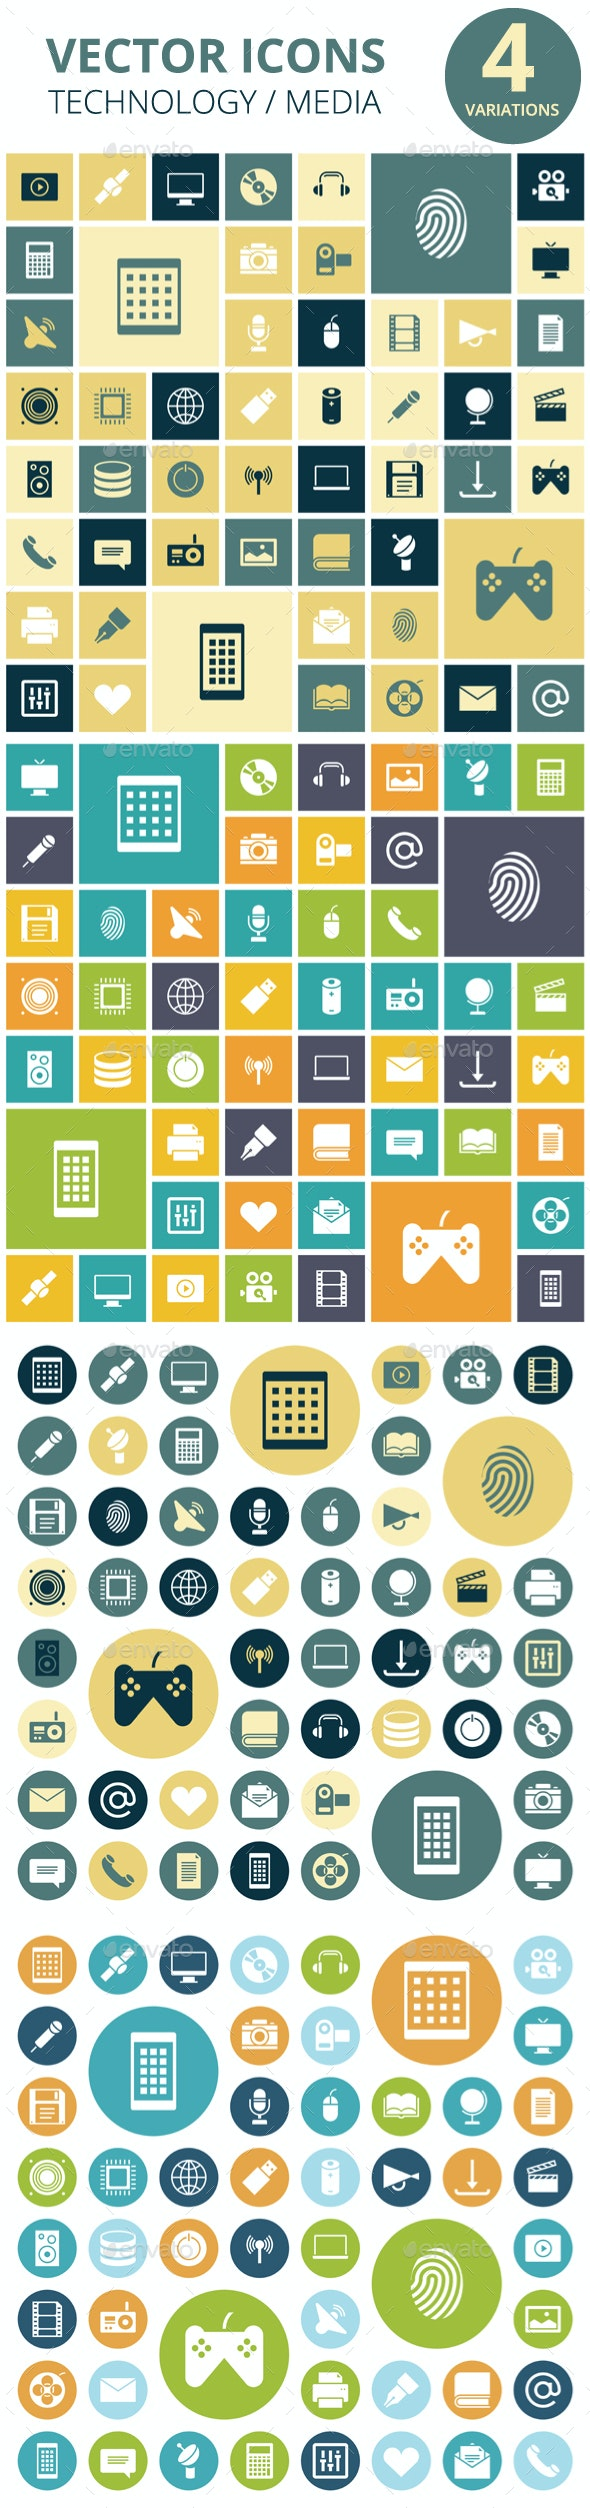 Flat Design Icons for Technology and Media - Technology Icons